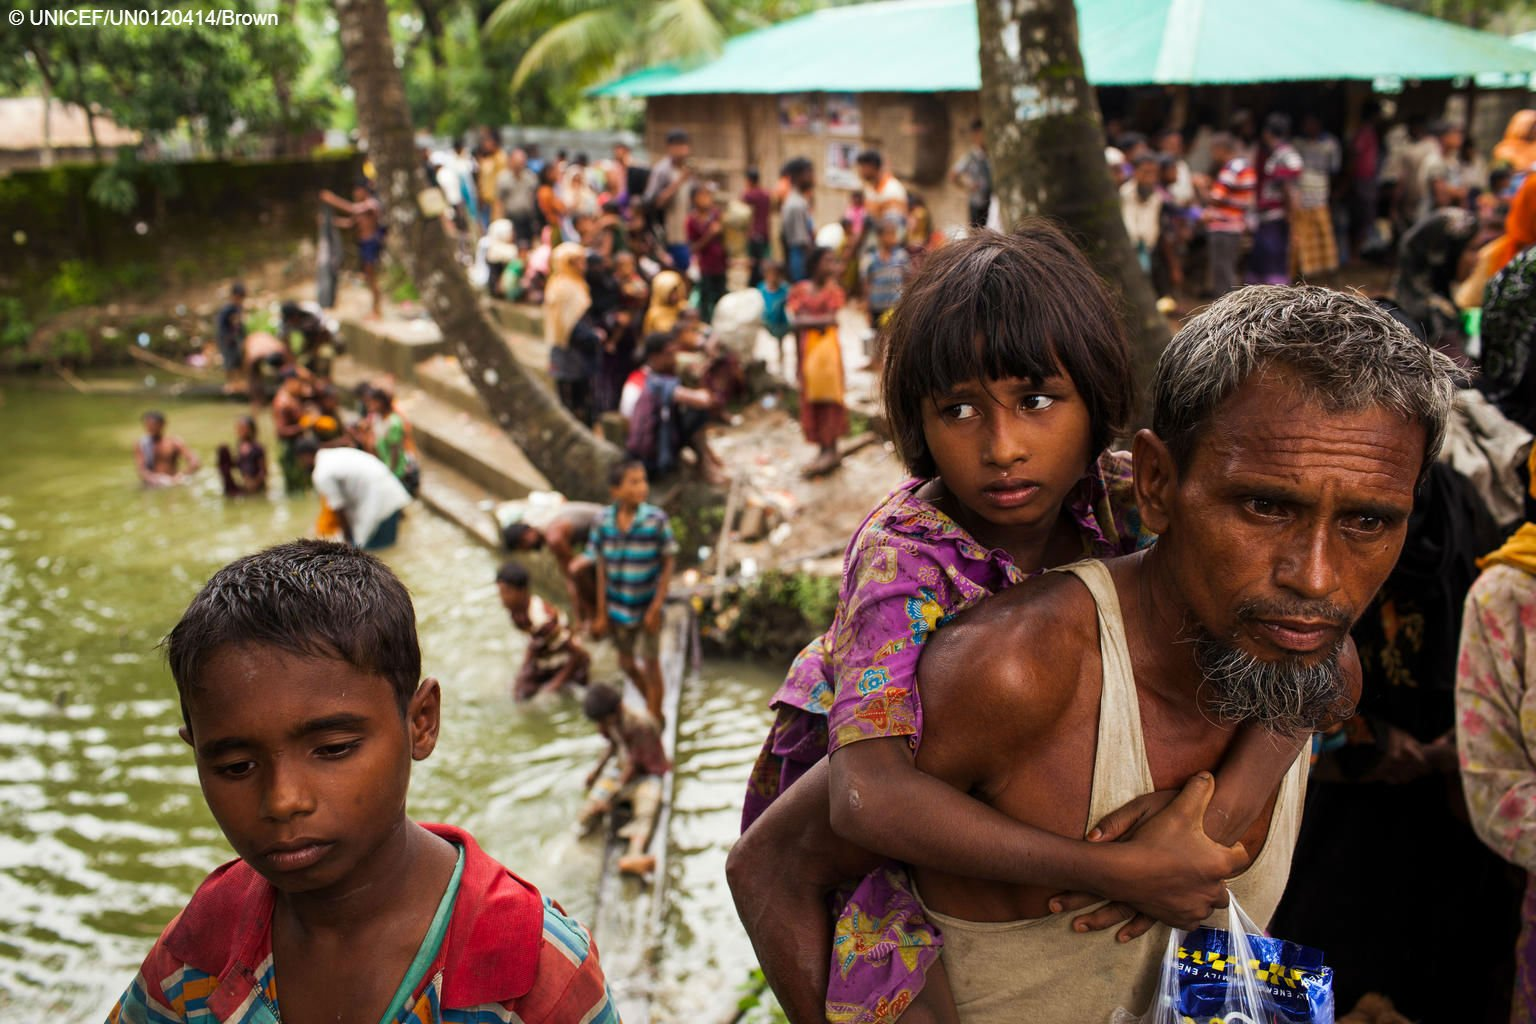 Over 400K Rohingya have fled #Myanmar to #Bangladesh.   60% are children. https://t.co/H4u61OO3Yh https://t.co/BammovhIni